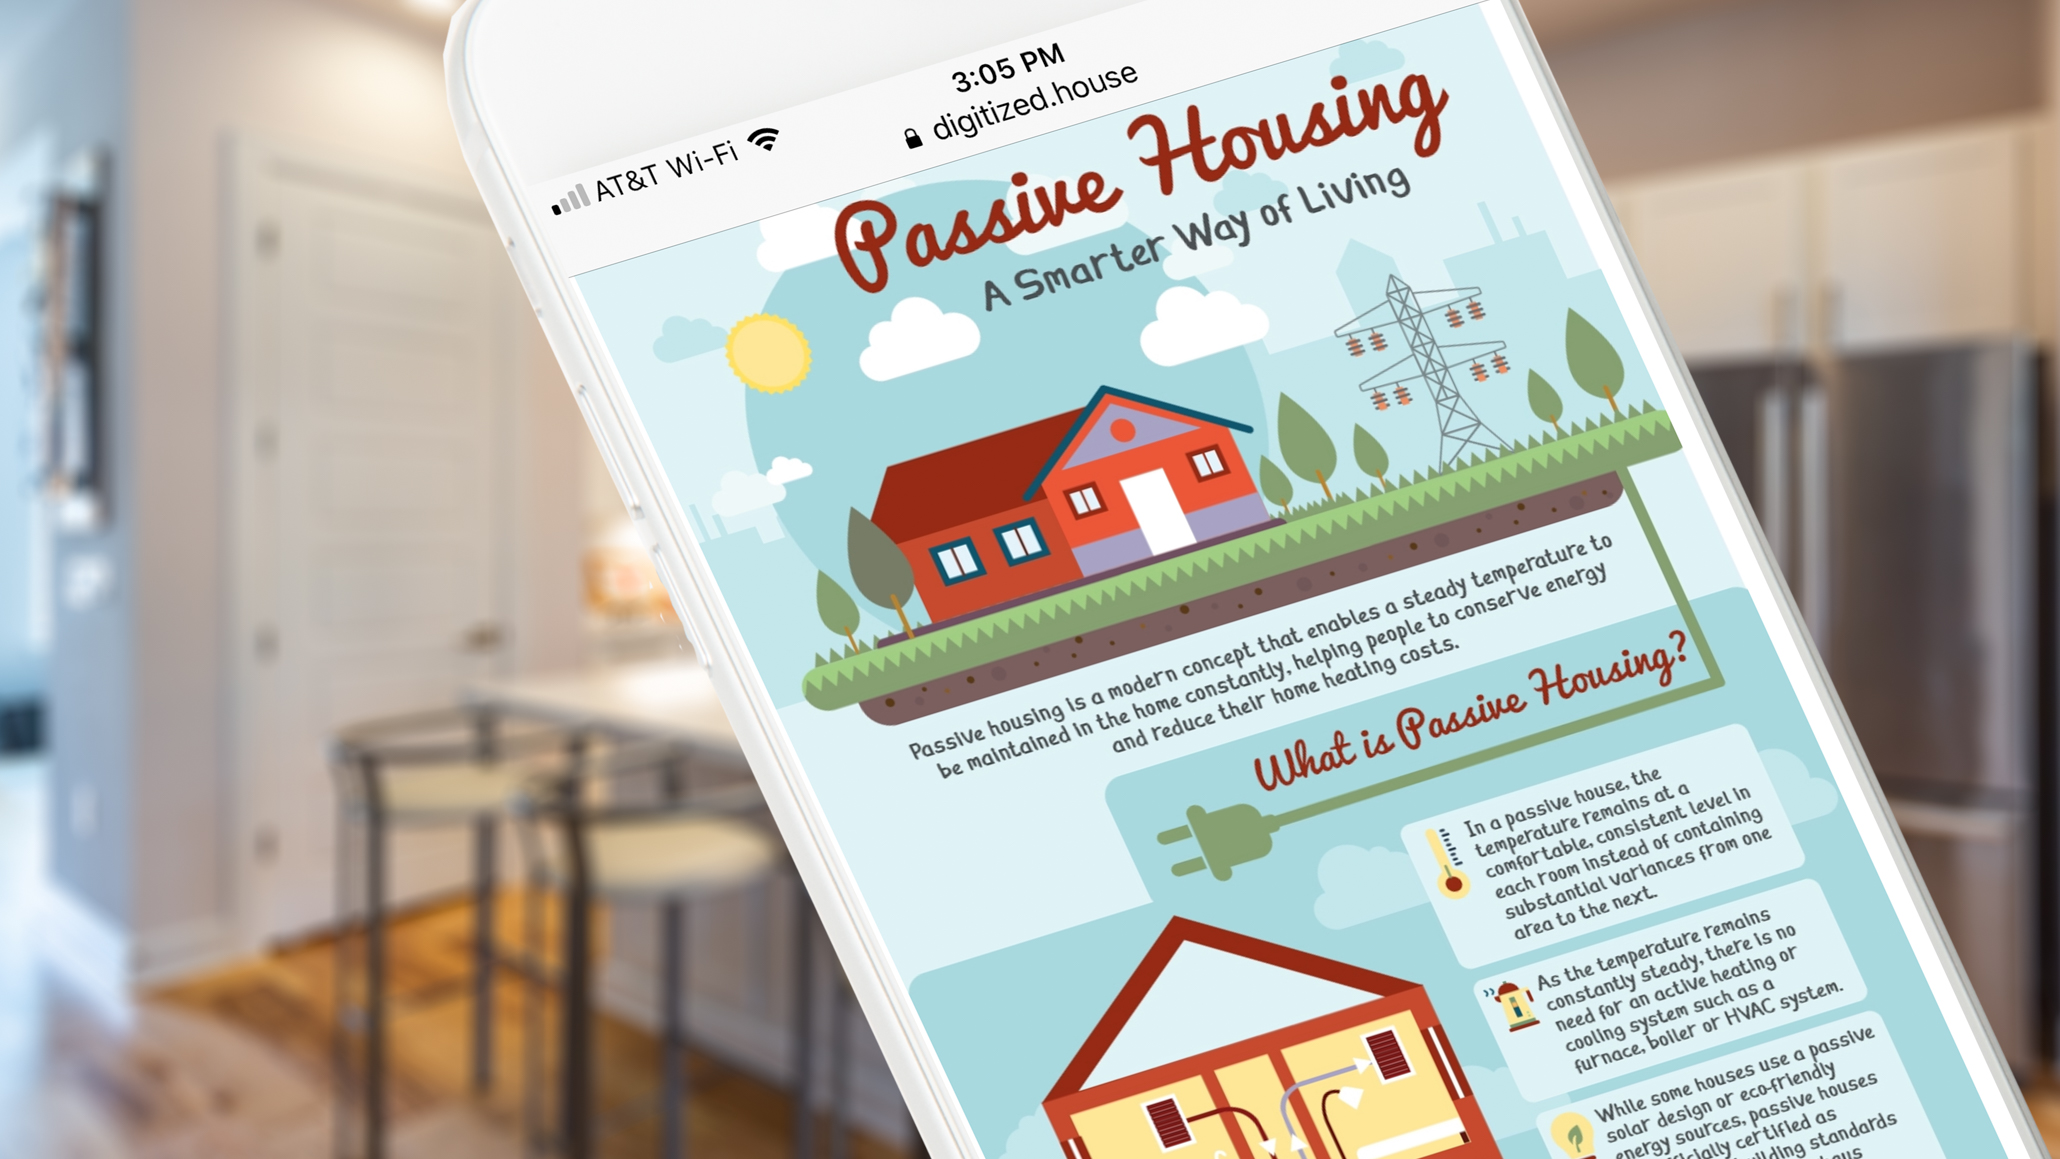 Infographic: Passive Housing | A Smarter Way of Living